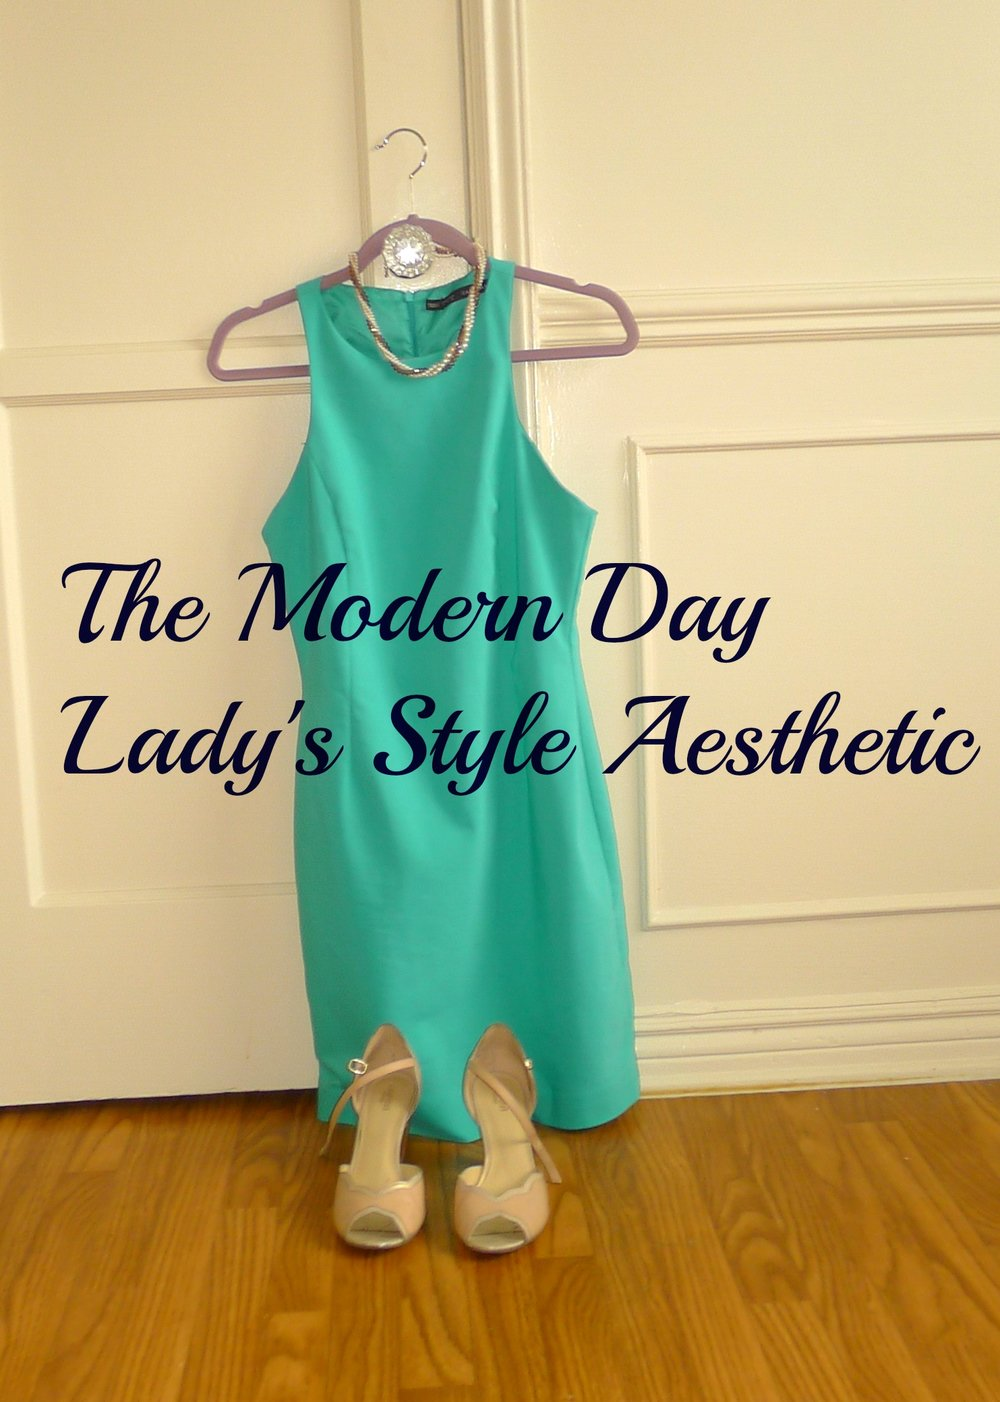 How to Dress Like a Modern Day Lady